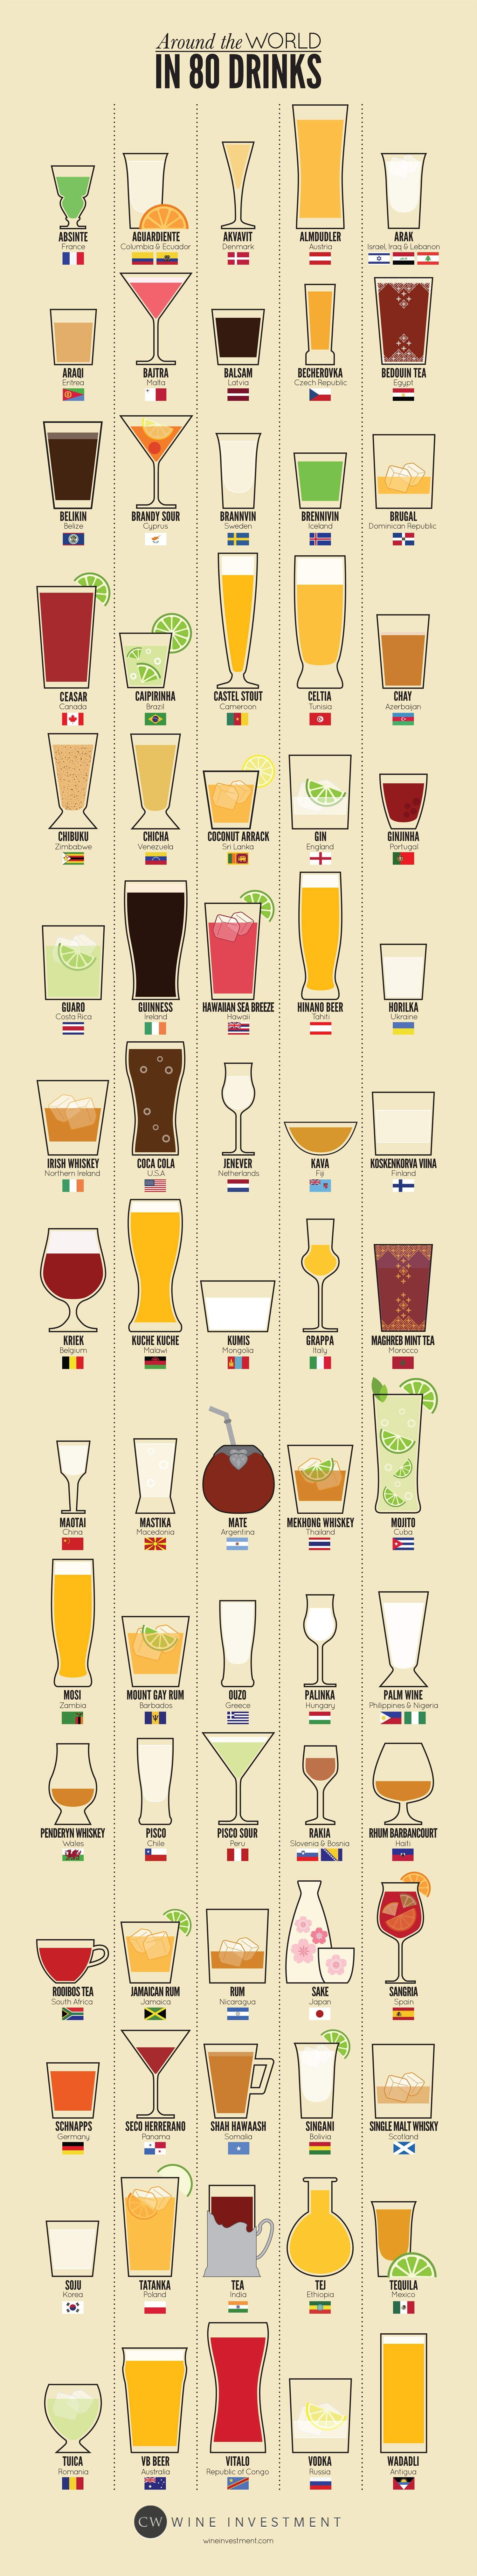 AroundtheWorldin80Drinks